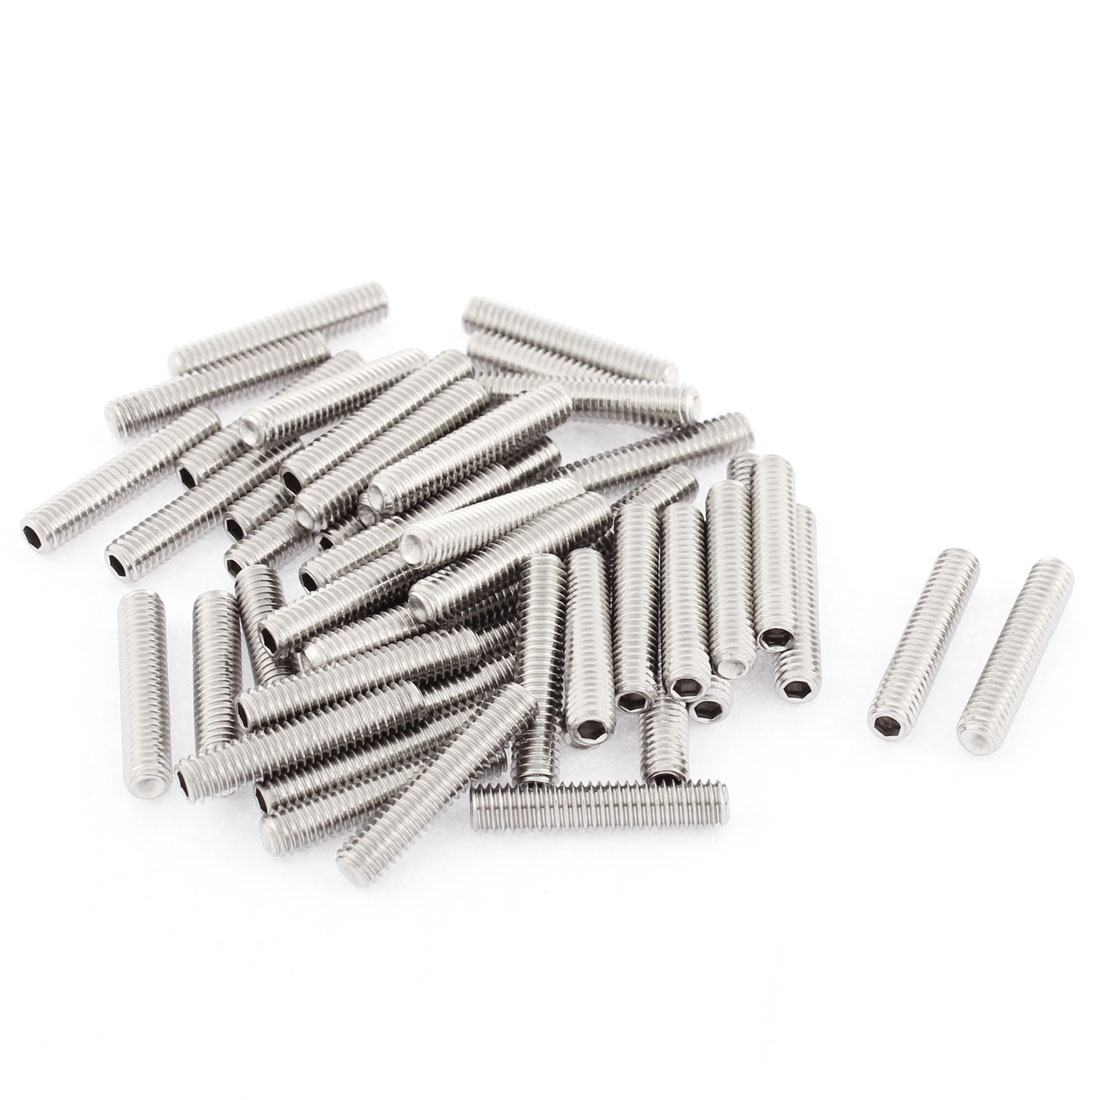 M4x20mm Stainless Steel Hex Socket Set Cap Point Grub Screws Silver Tone 50pcs